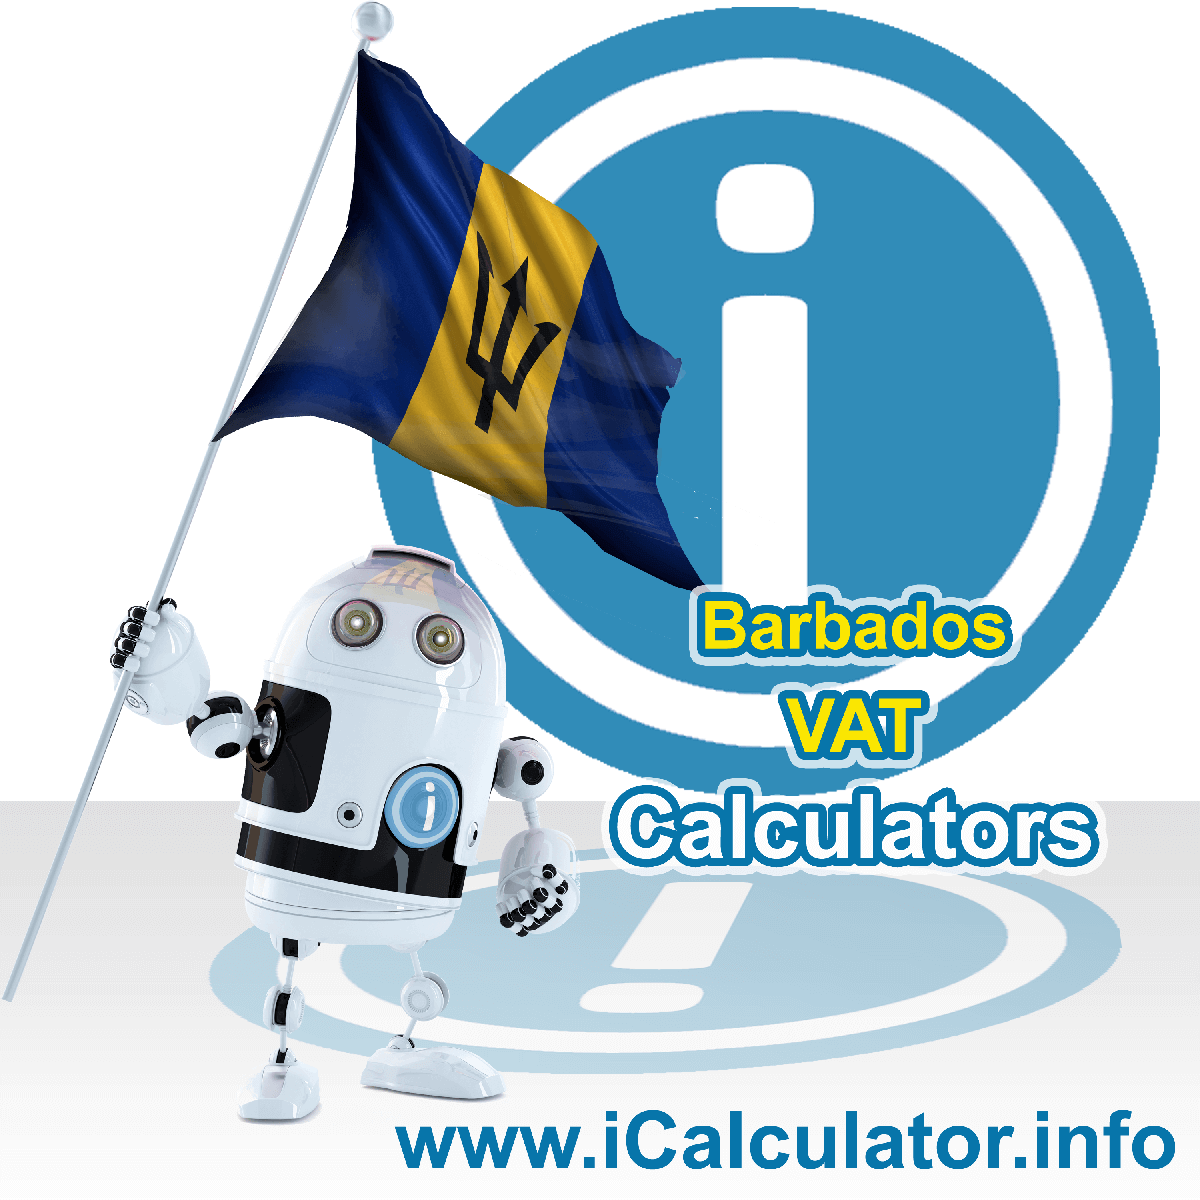 Barbados VAT Calculator. This image shows the Barbados flag and information relating to the VAT formula used for calculating Value Added Tax in Barbados using the Barbados VAT Calculator in 2020